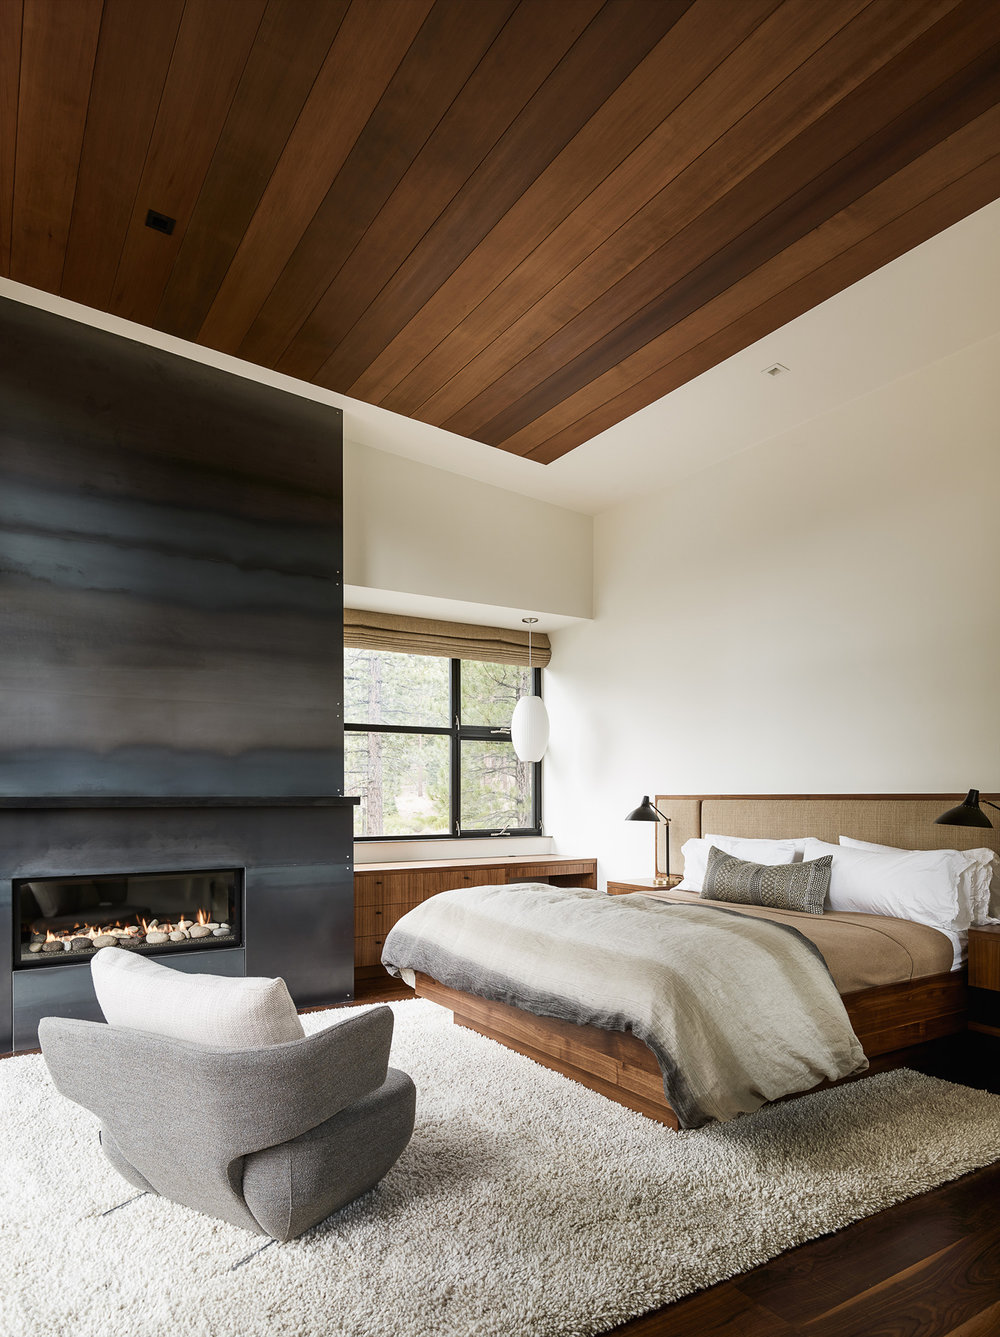 Lot 141_Master Bedroom_Fireplace_Metal Cladding_Wood Ceilings.jpg